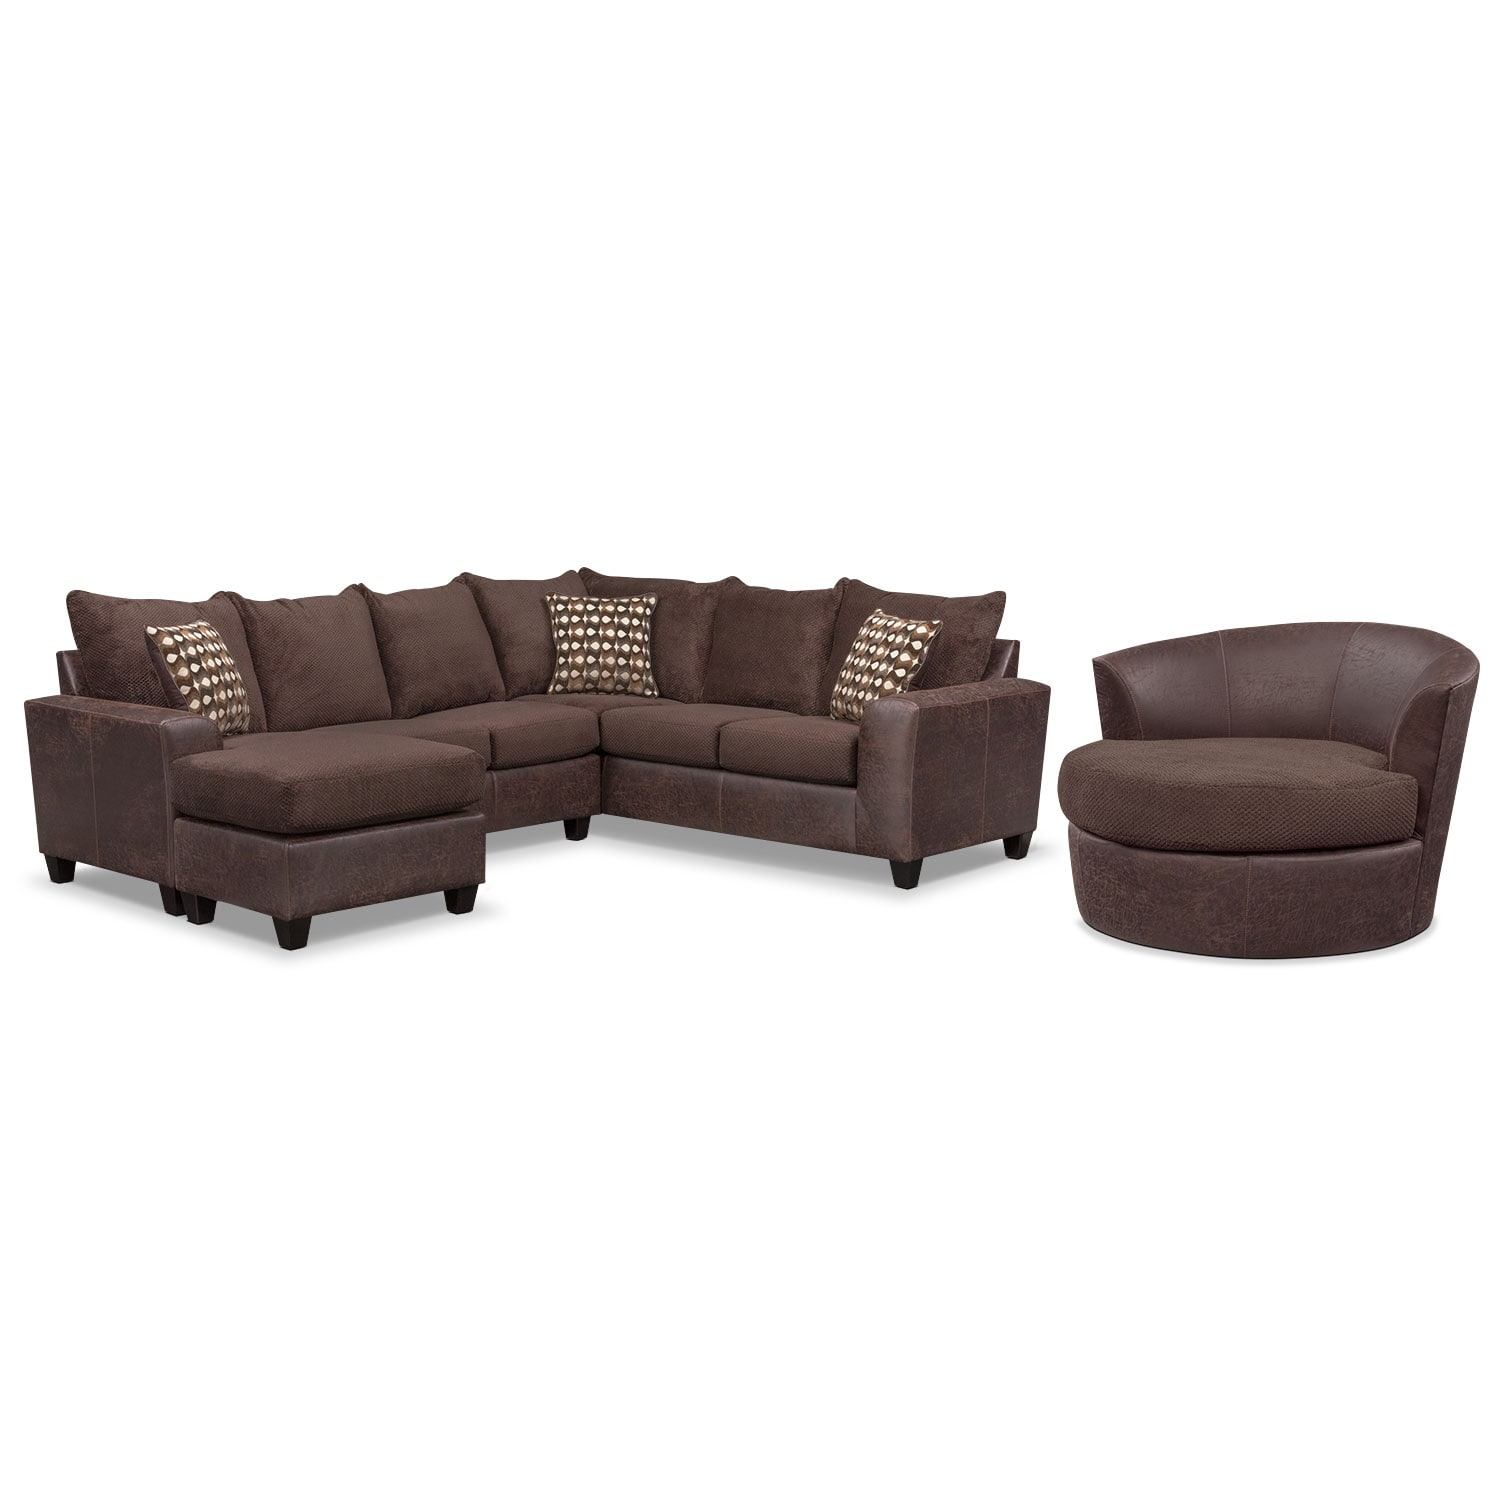 Living Room Furniture - Brando 3-Piece Sectional w/ Chaise and Swivel Chair Set - Chocolate